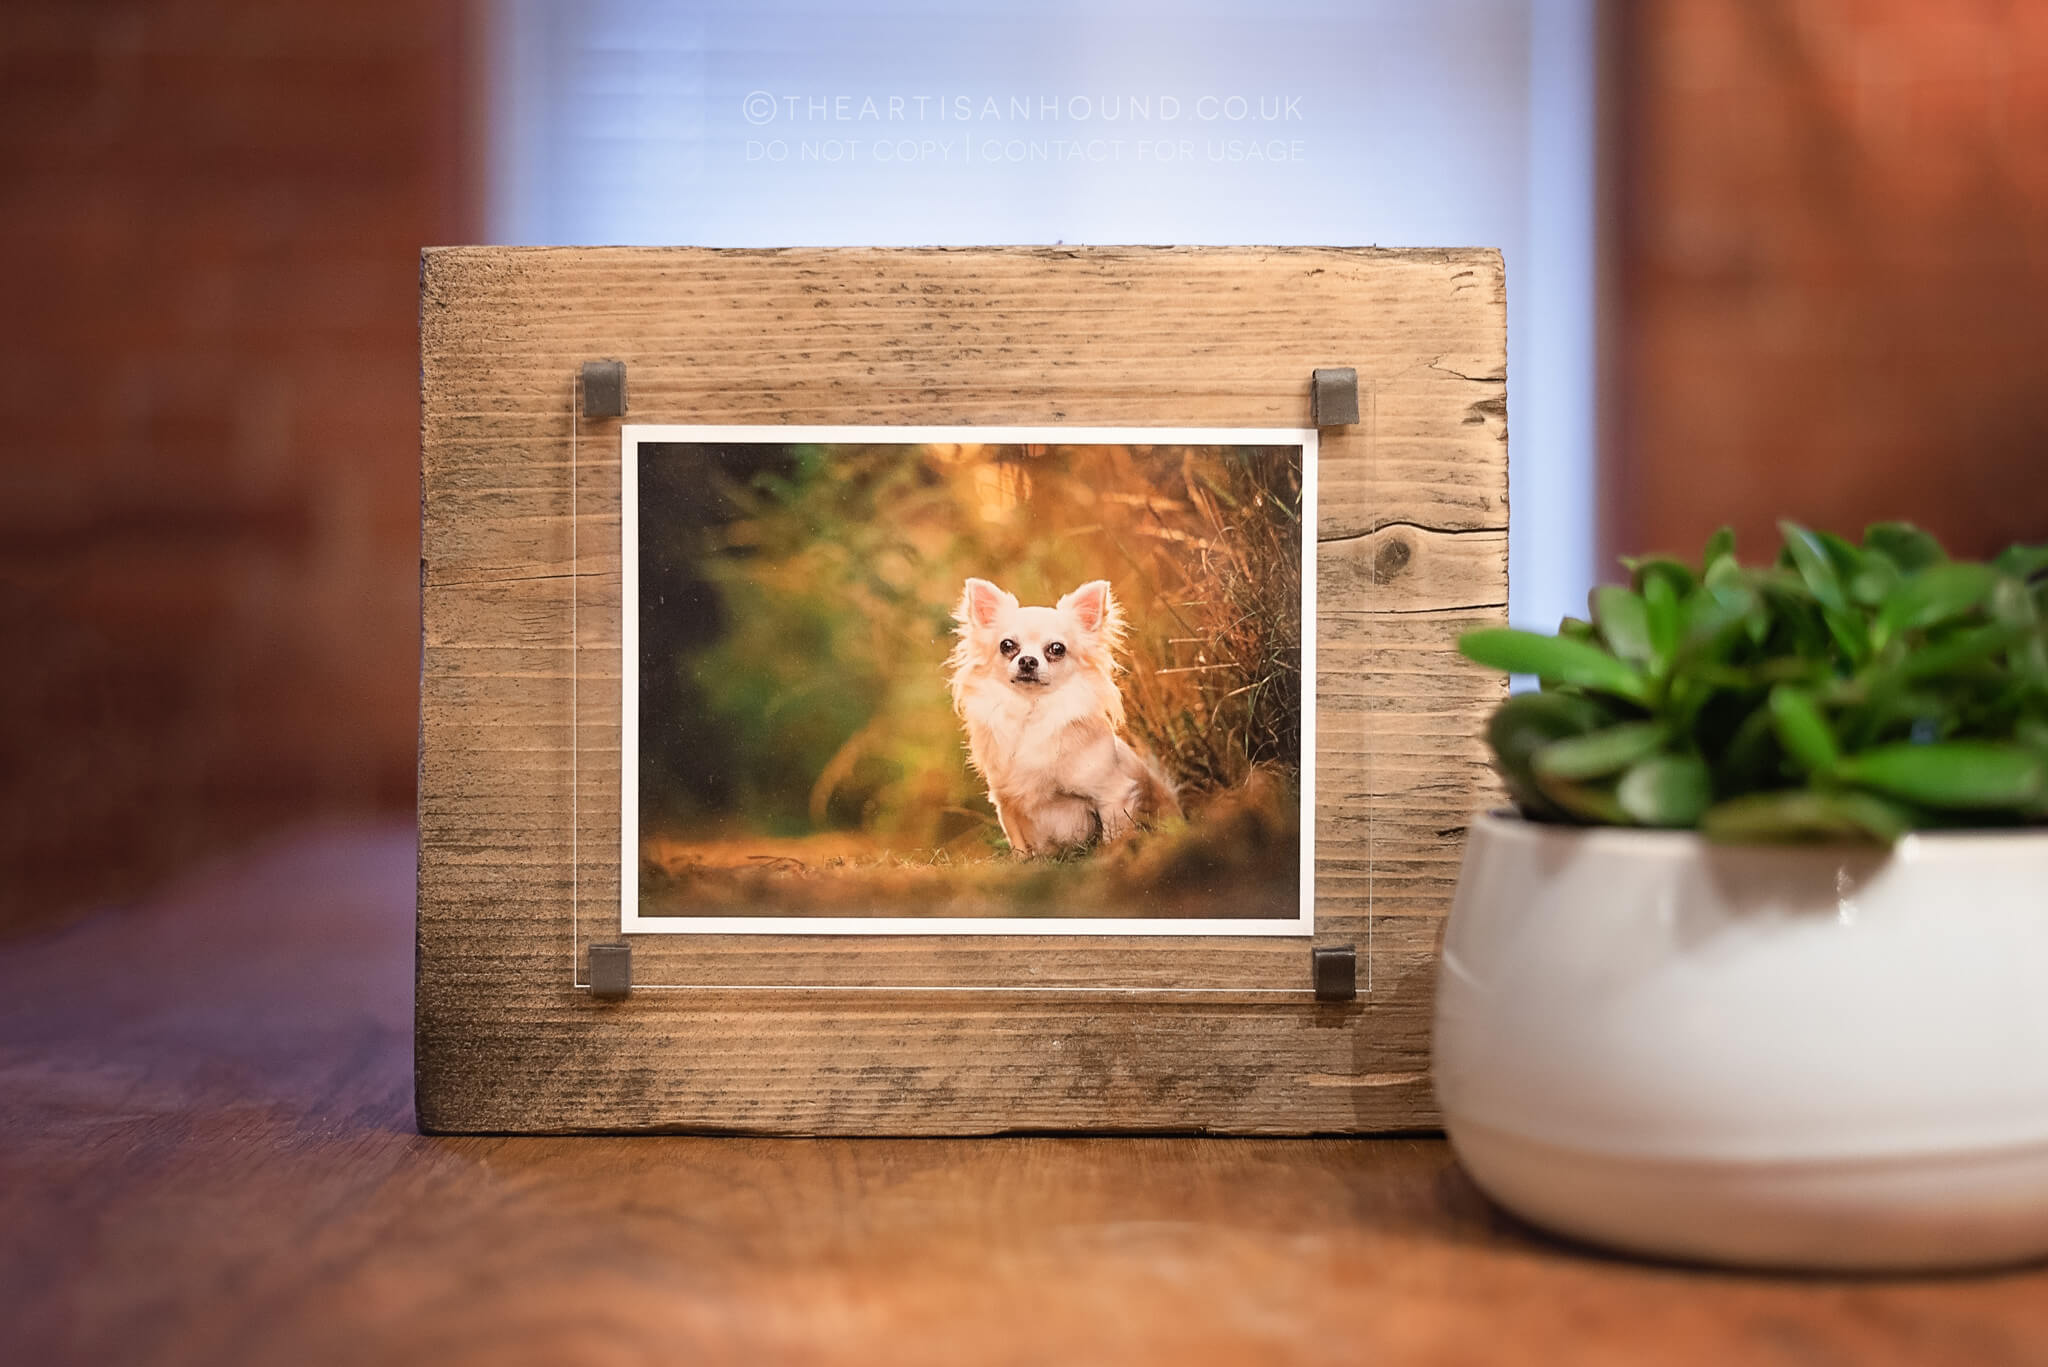 PRODUCT SPOTLIGHT: WOODEN PHOTO BLOCK